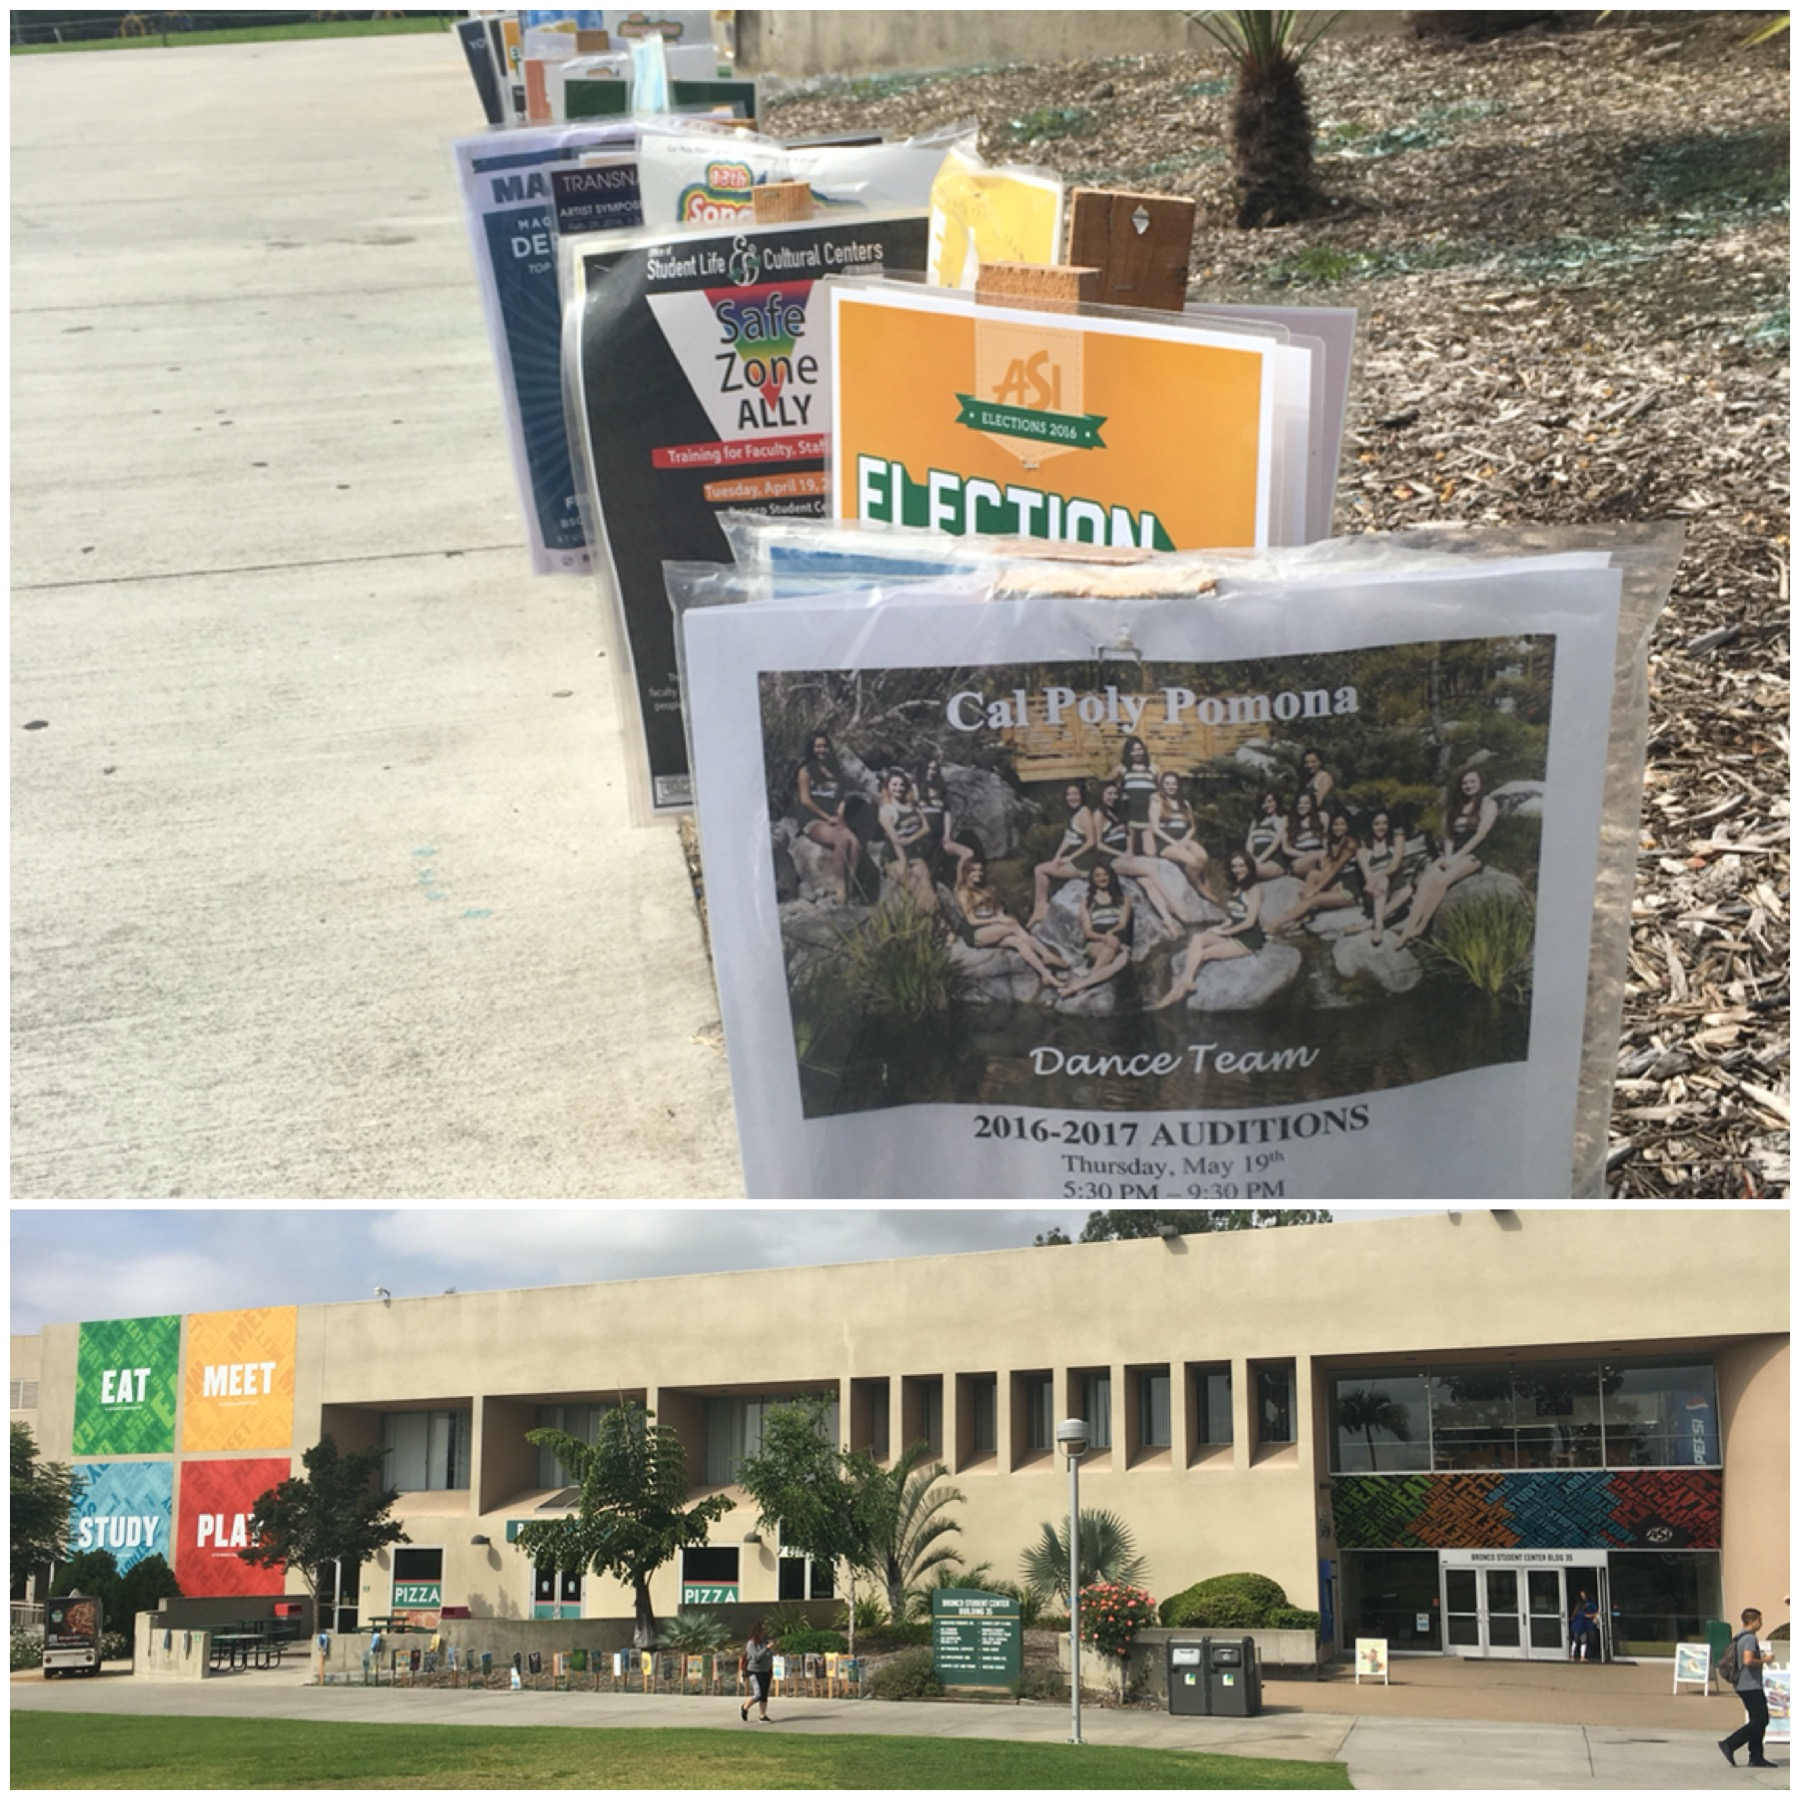 Flyers outside the Student Center